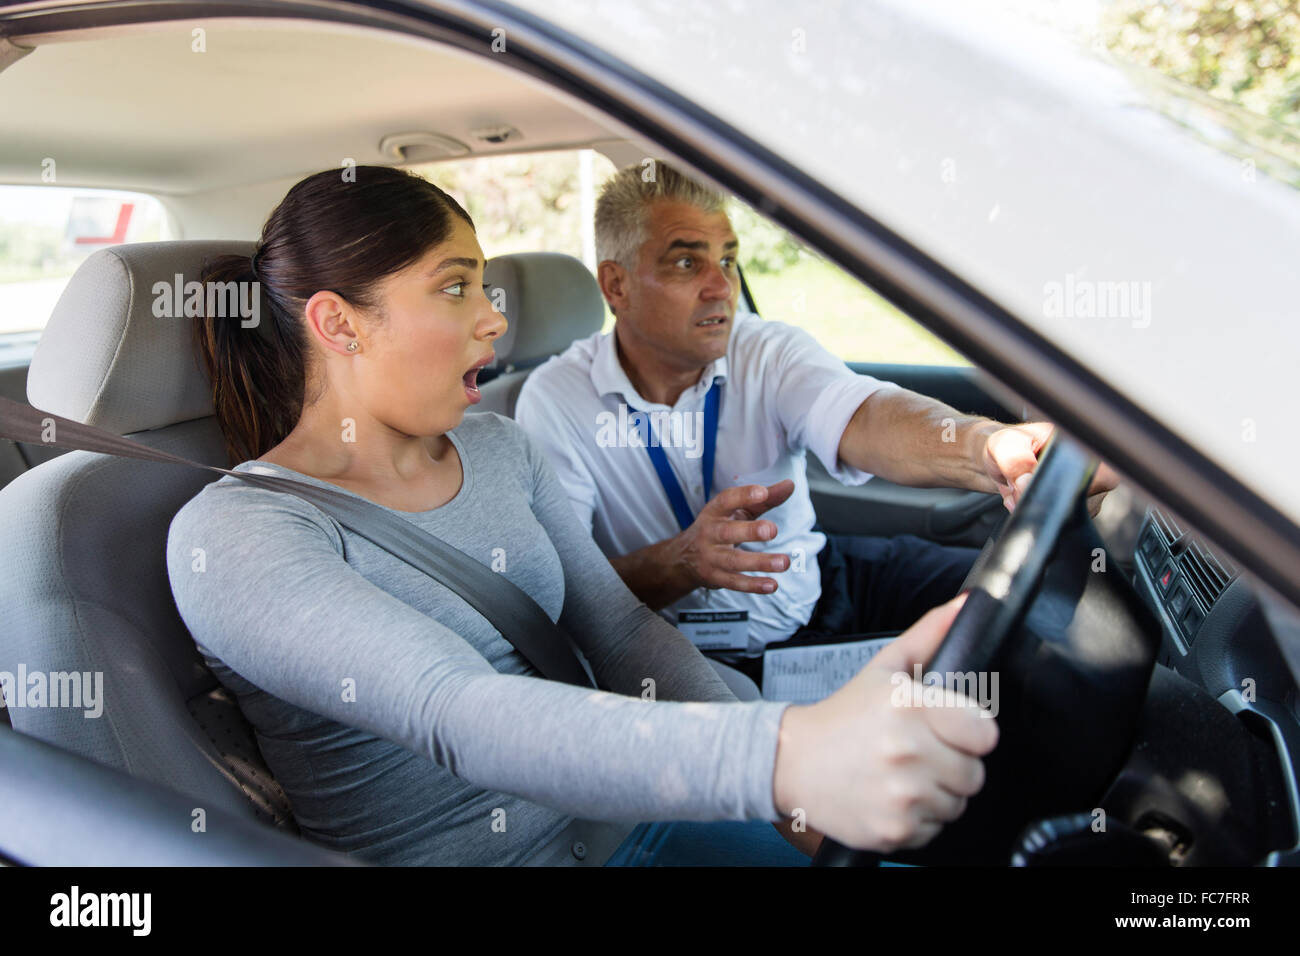 scared student driver making mistake during driving test Stock Photo